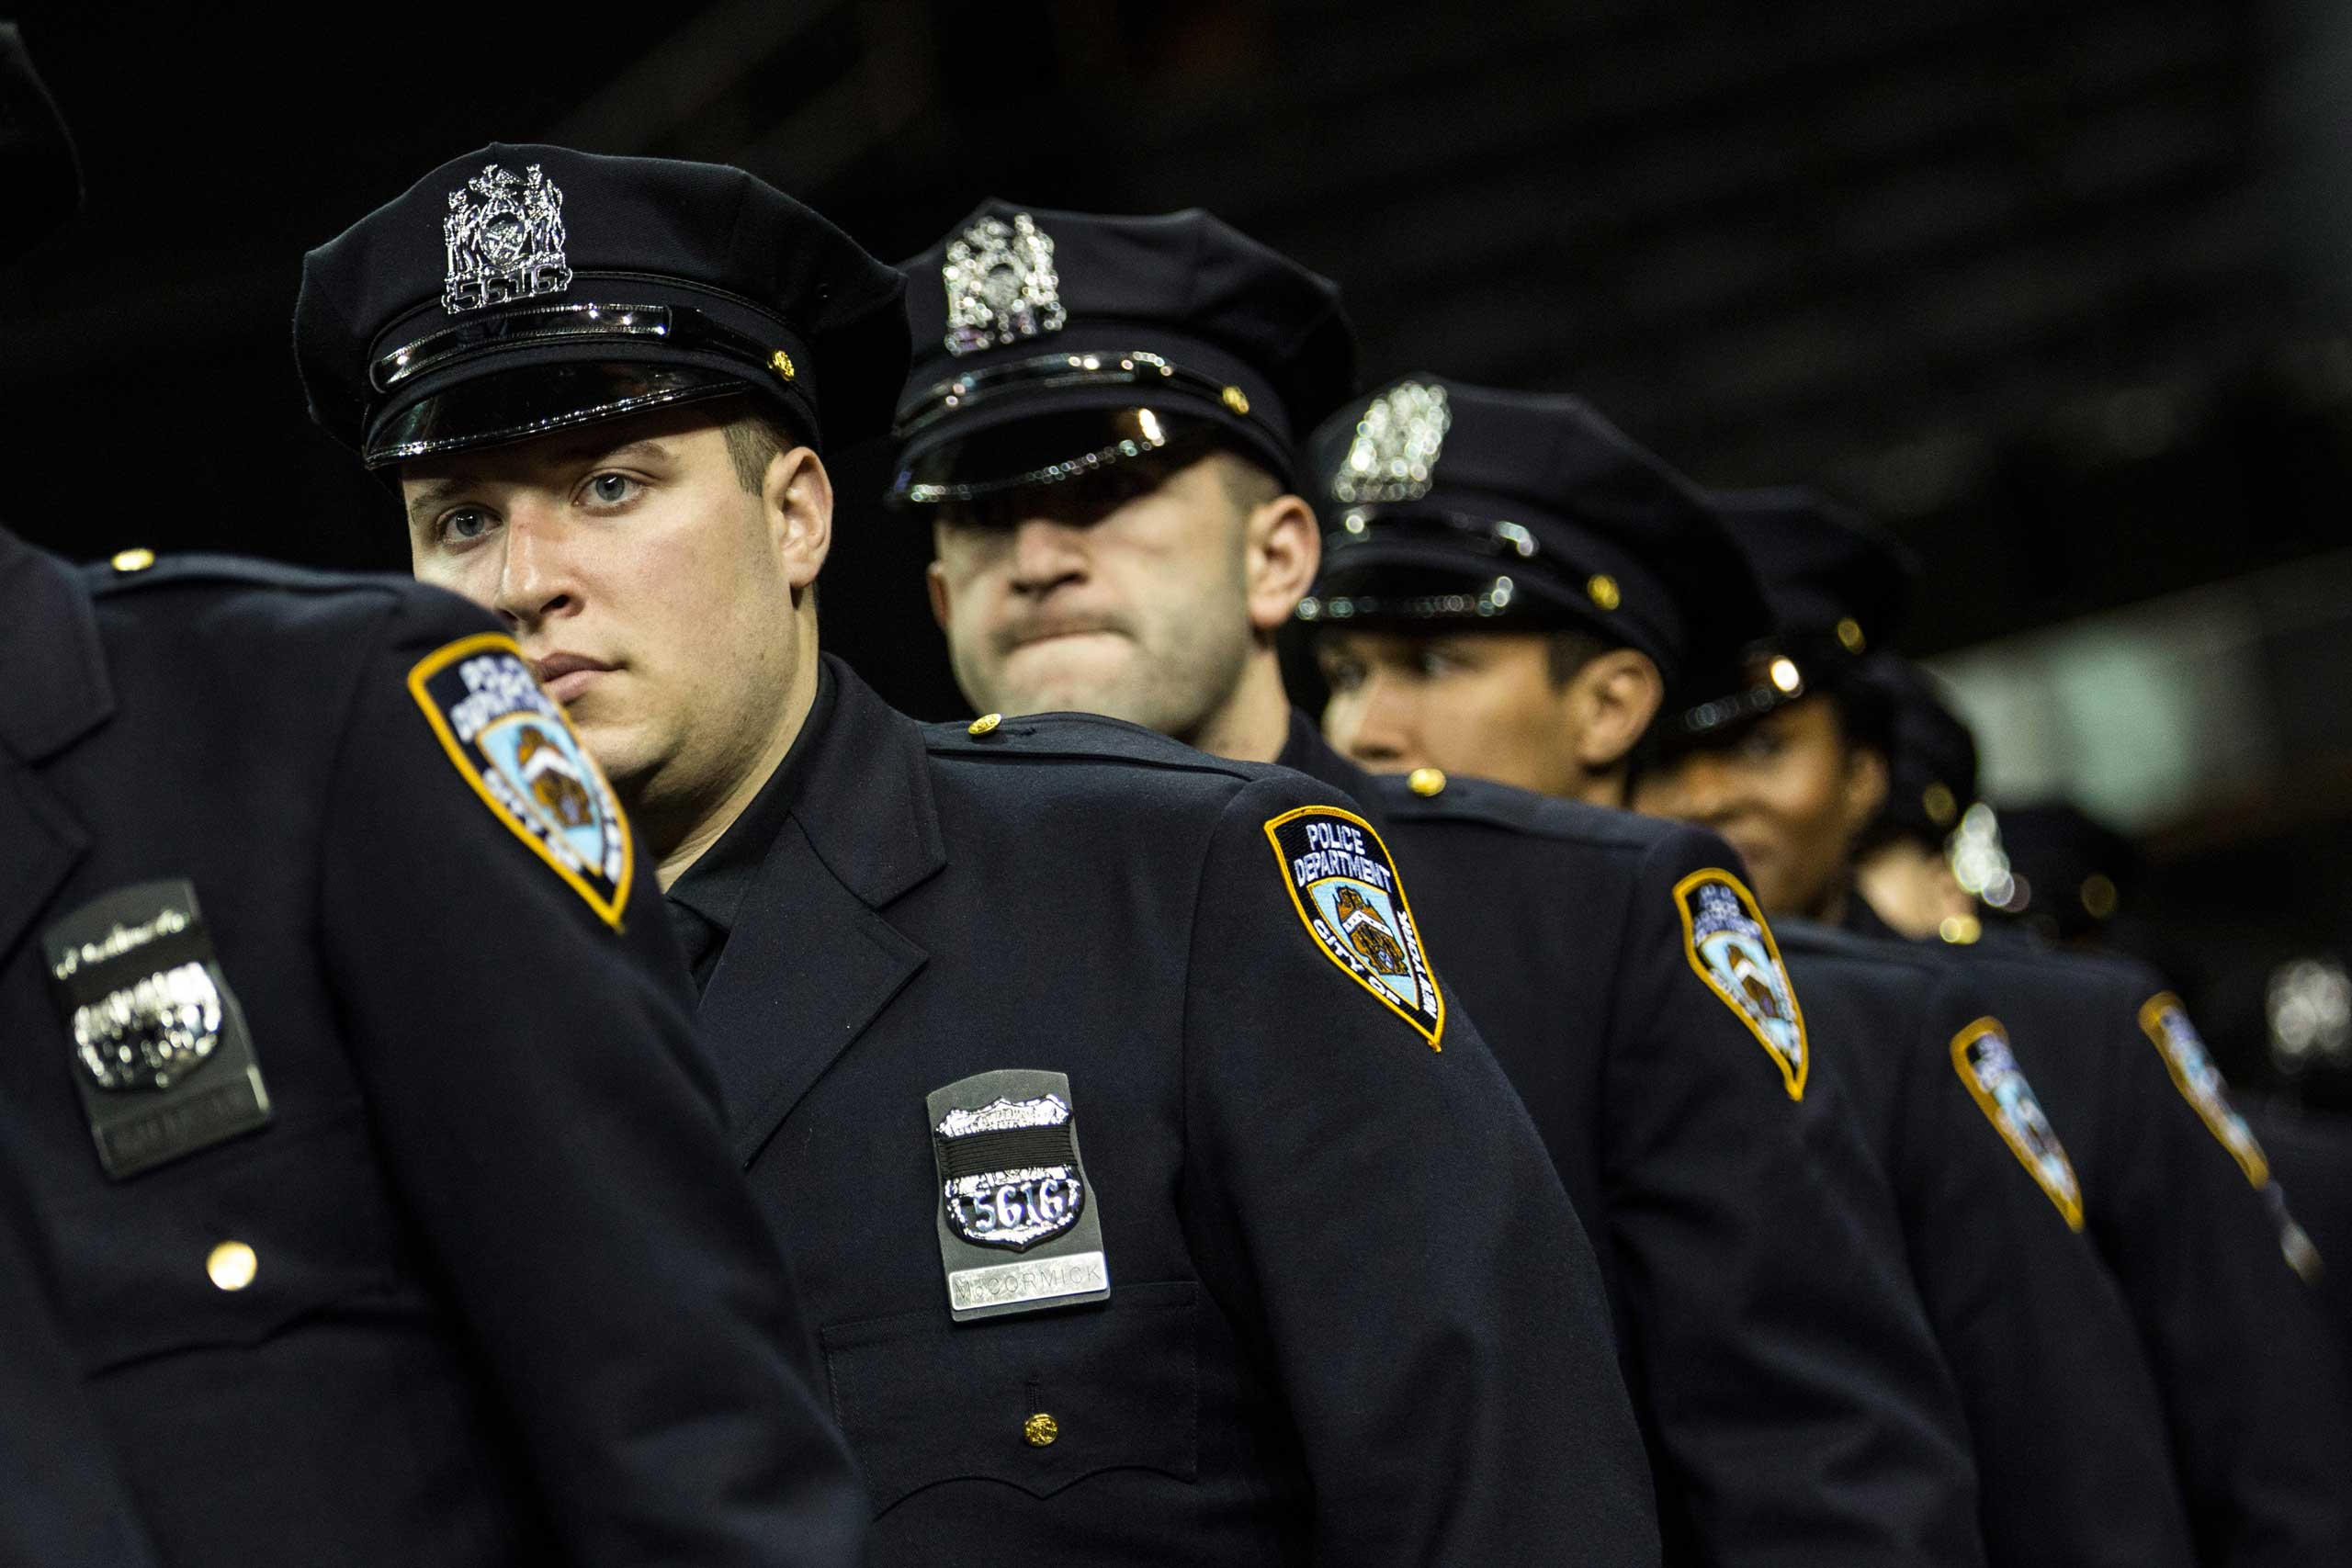 Police officers attend their New York Police Department graduation ceremony at Madison Square Garden on Dec. 29, 2014 in New York City.